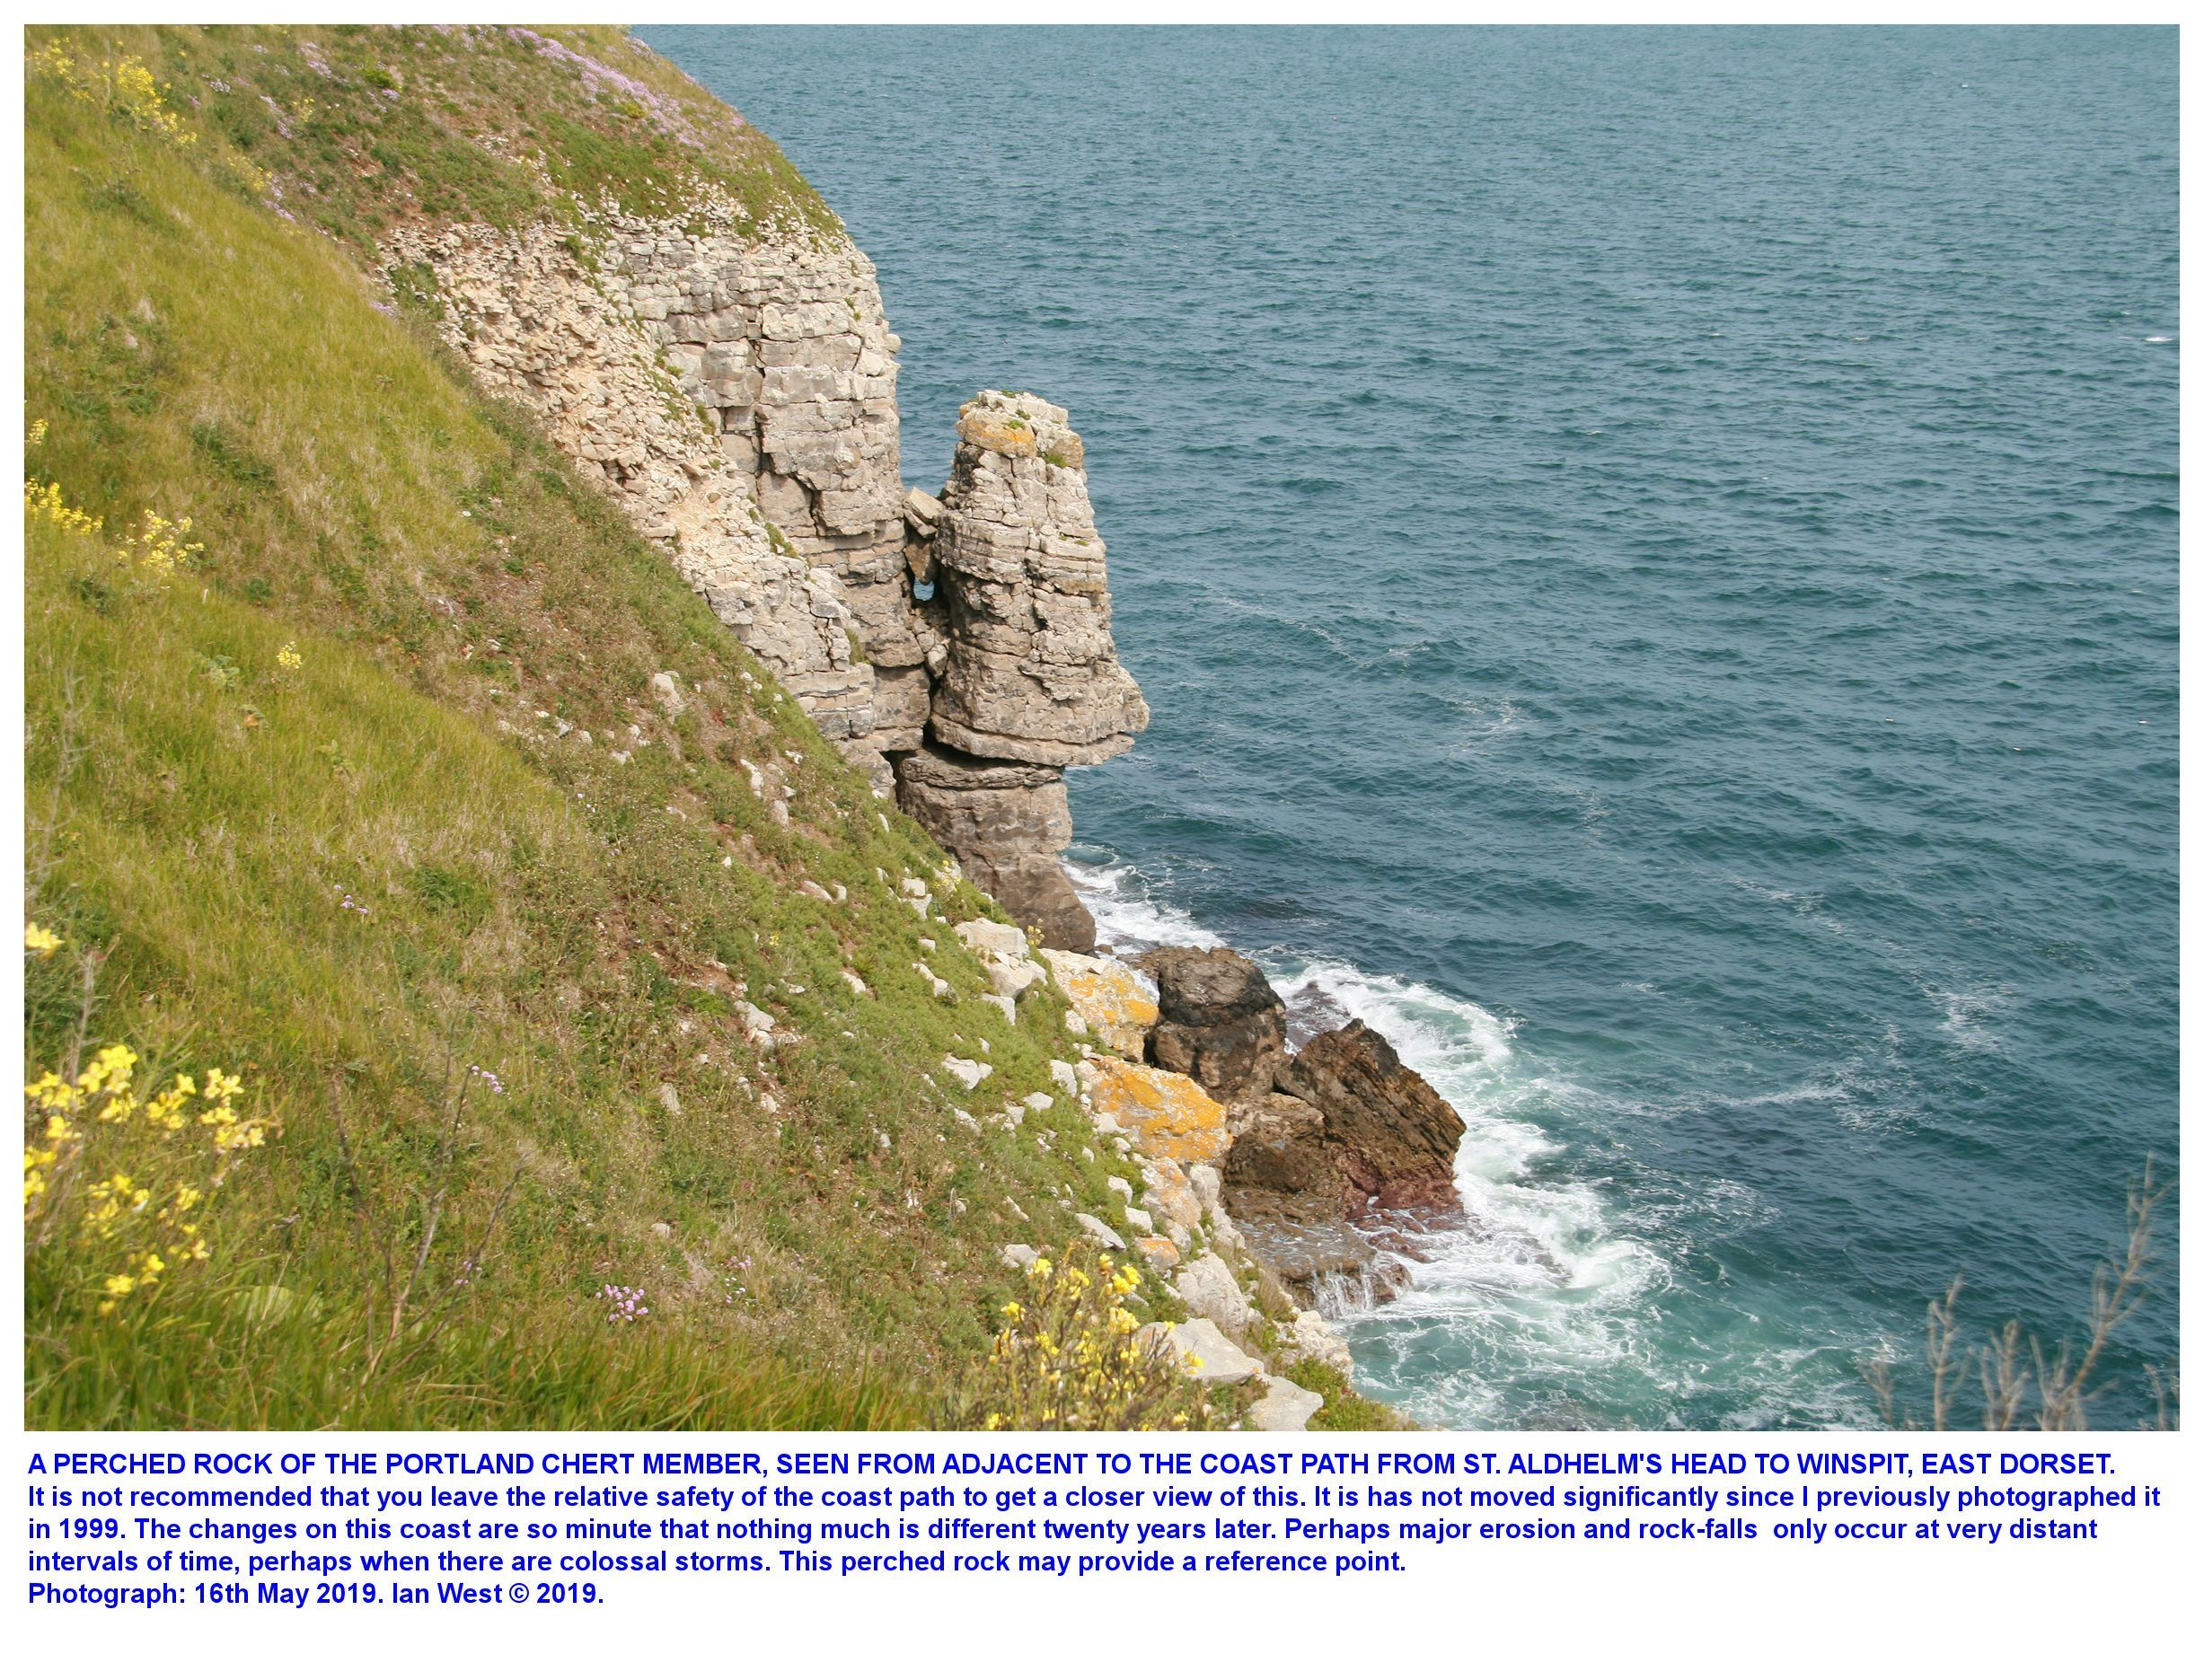 An incipient topple of Portland Stone, east of St. Aldhelm's Head, as seen in May 2019, closer view